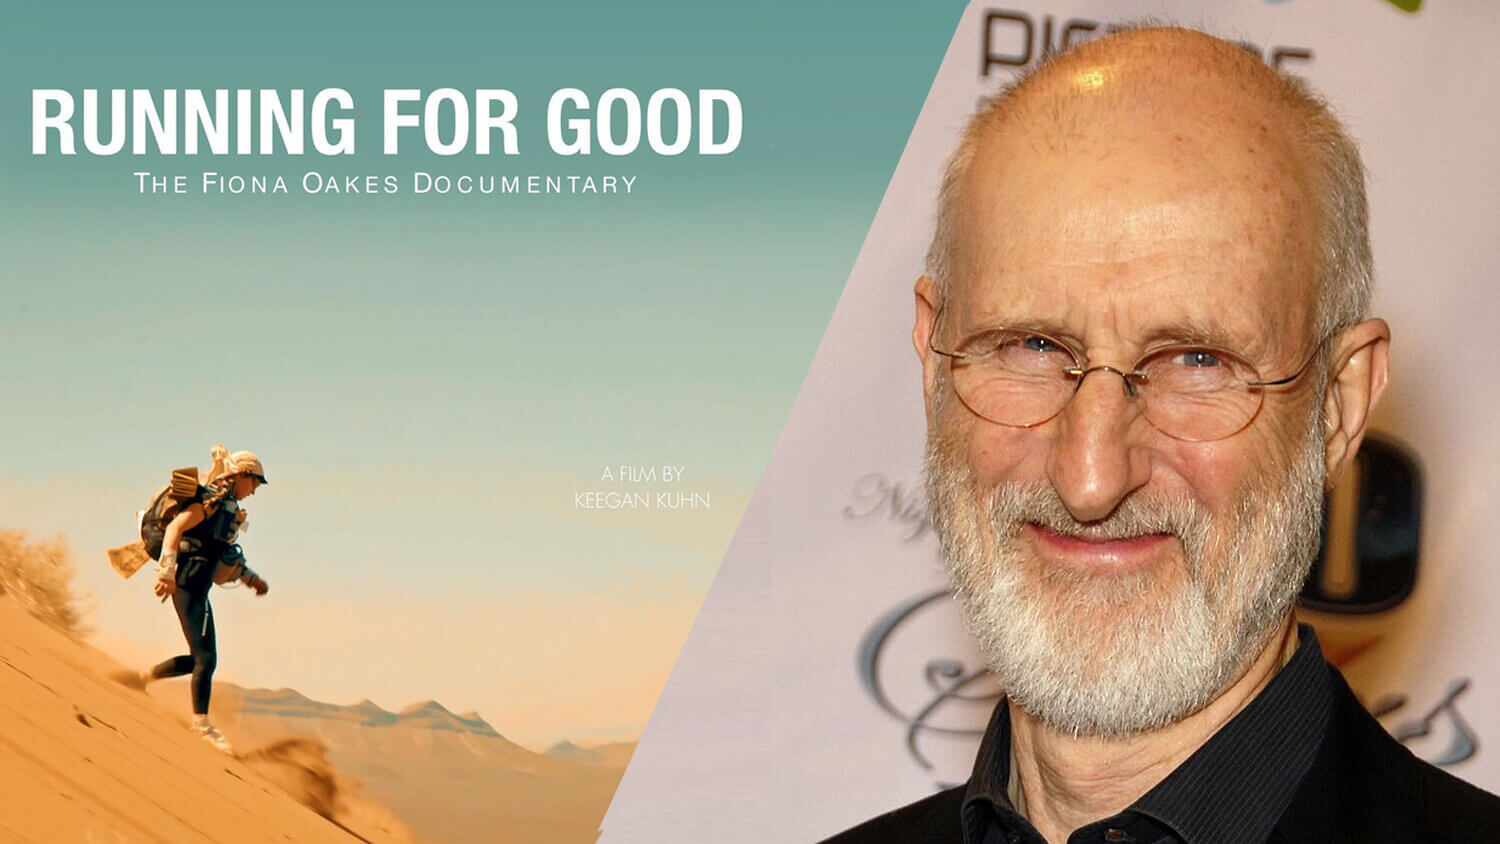 'Babe' Actor James Cromwell Announced as Producer of New Documentary 'Running for Good'